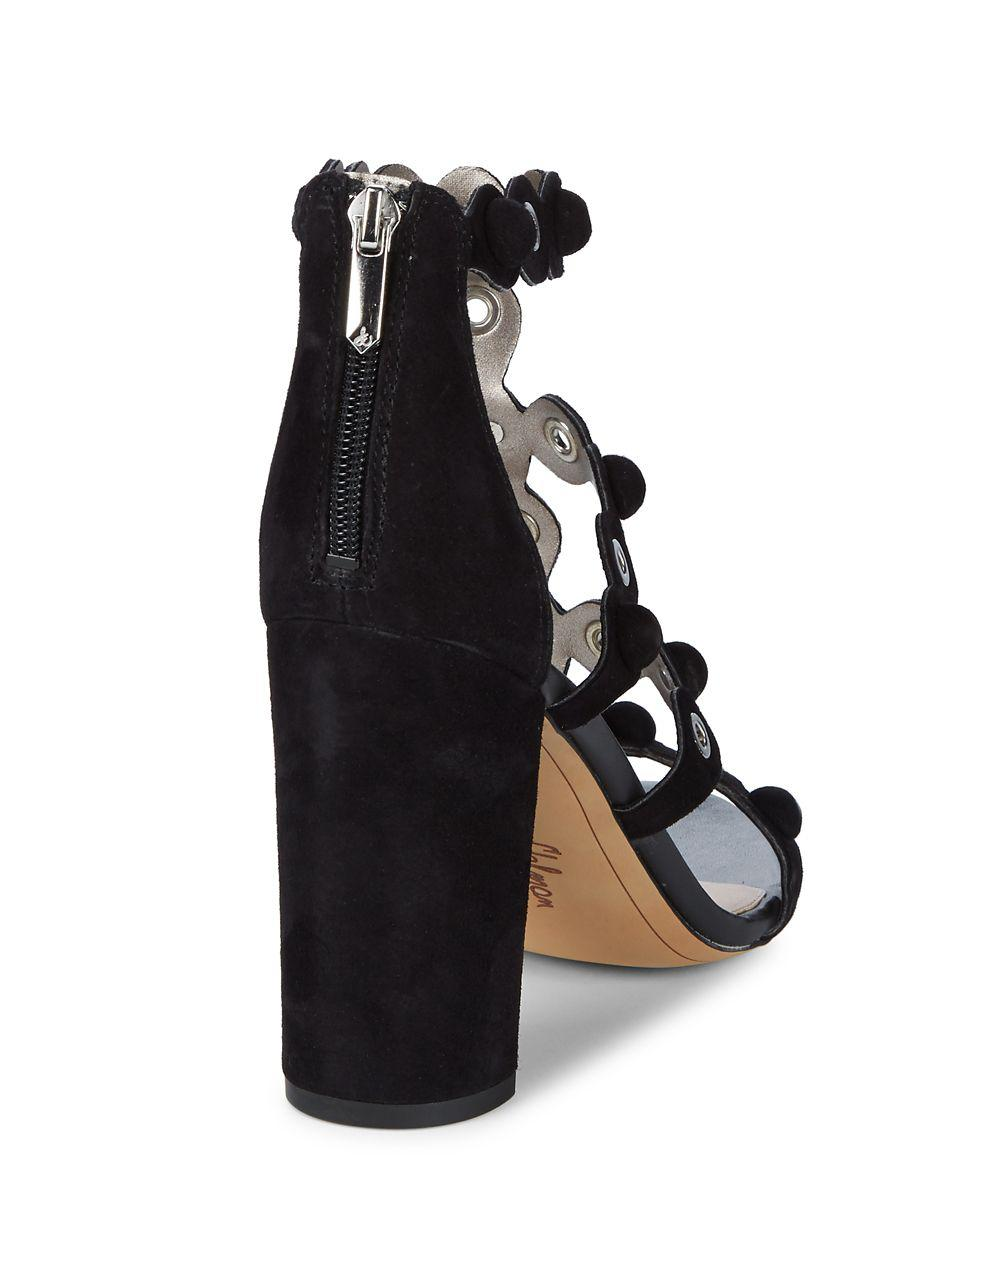 2b46a3ee3c7 Sam Edelman Yuli Strappy Grommet Suede Sandal in Black - Save  83.89830508474576% - Lyst